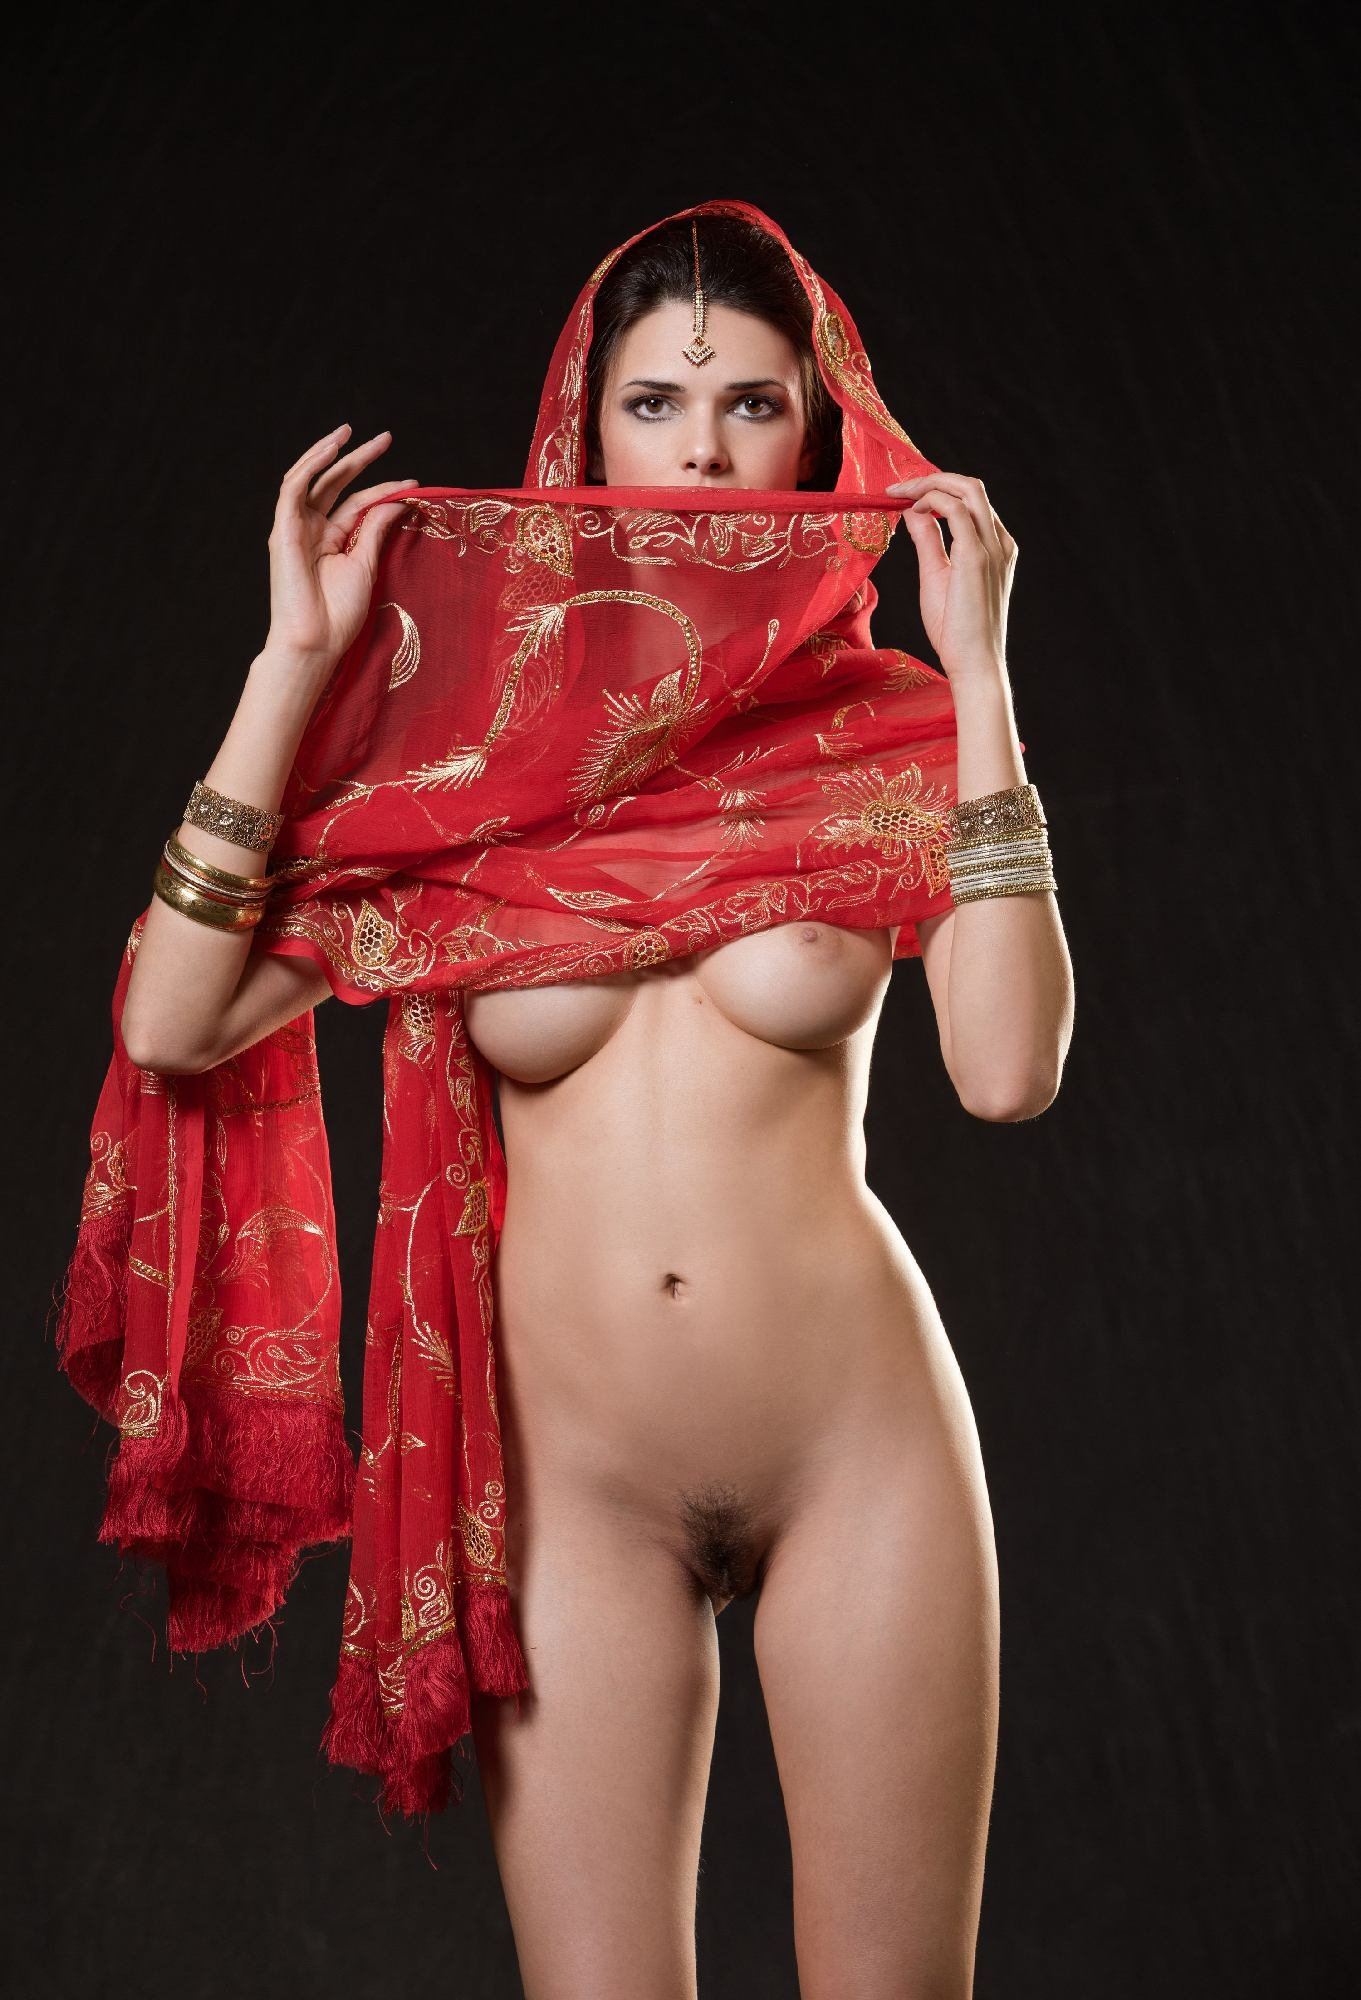 nude-erotic-mujra-oral-sex-sex-and-aids